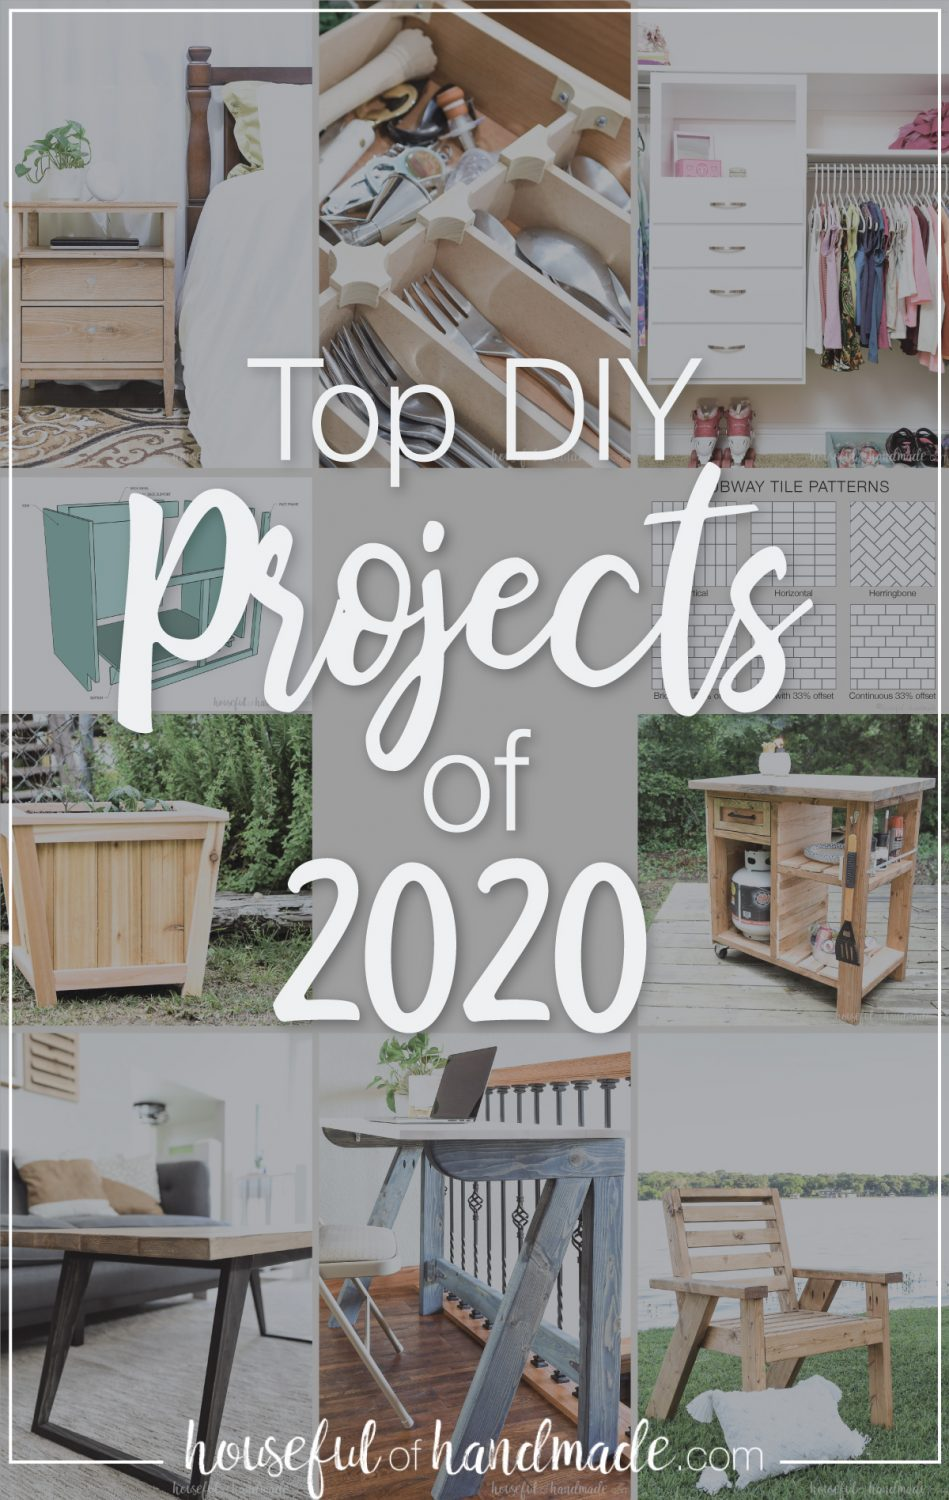 Large picture of the 10 most popular DIY projects from Houseful of Handmade with a text overlay: Top DIY projects of 2020.